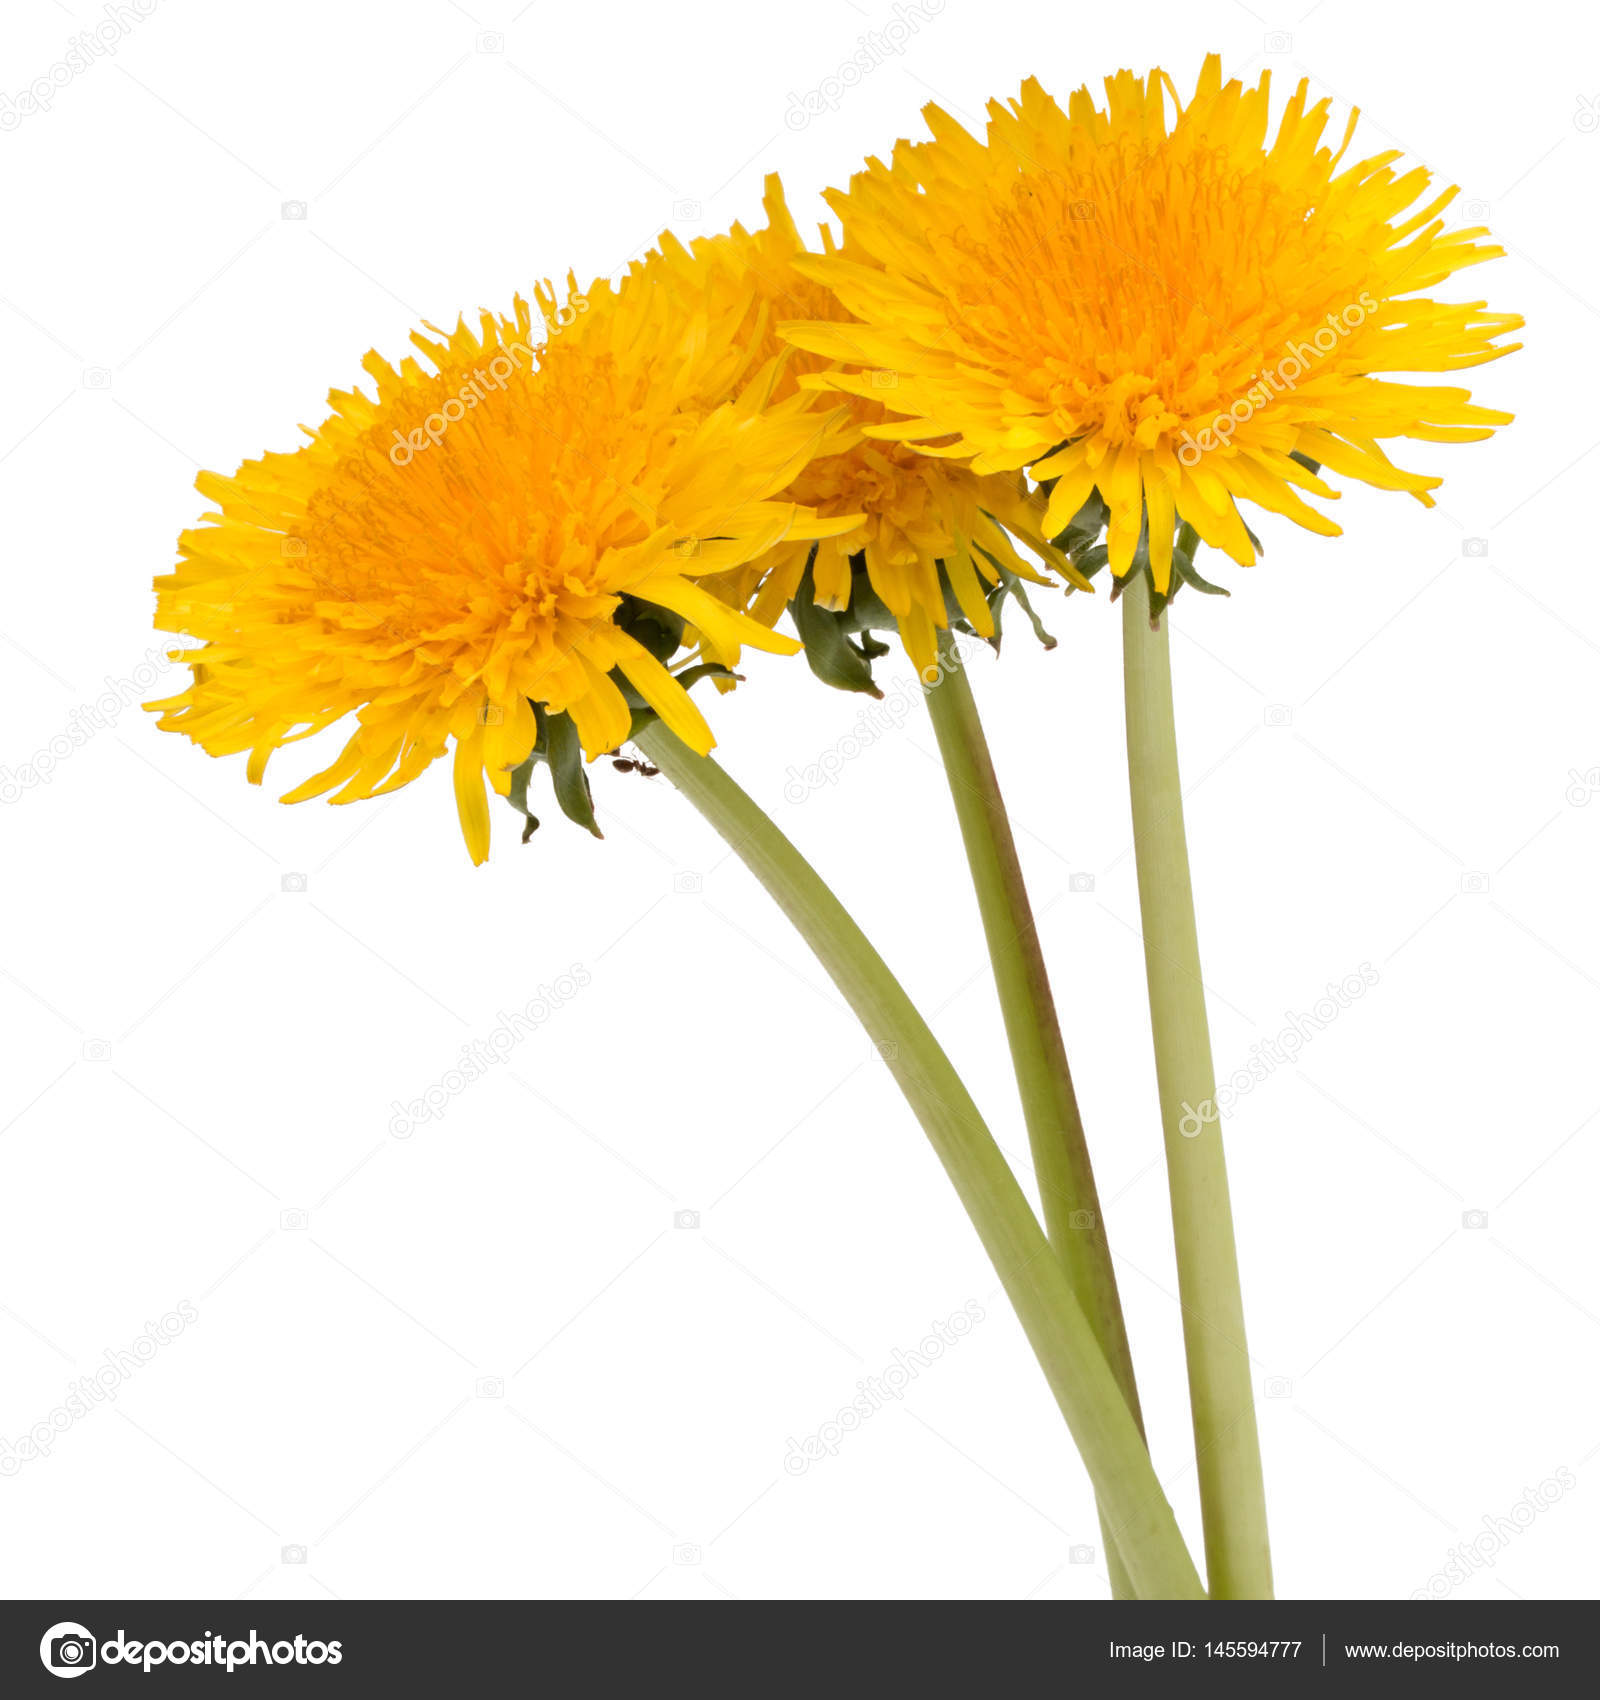 Dandelion flower on white background stock photo natika 145594777 dandelion flower isolated on white background cutout photo by natika mightylinksfo